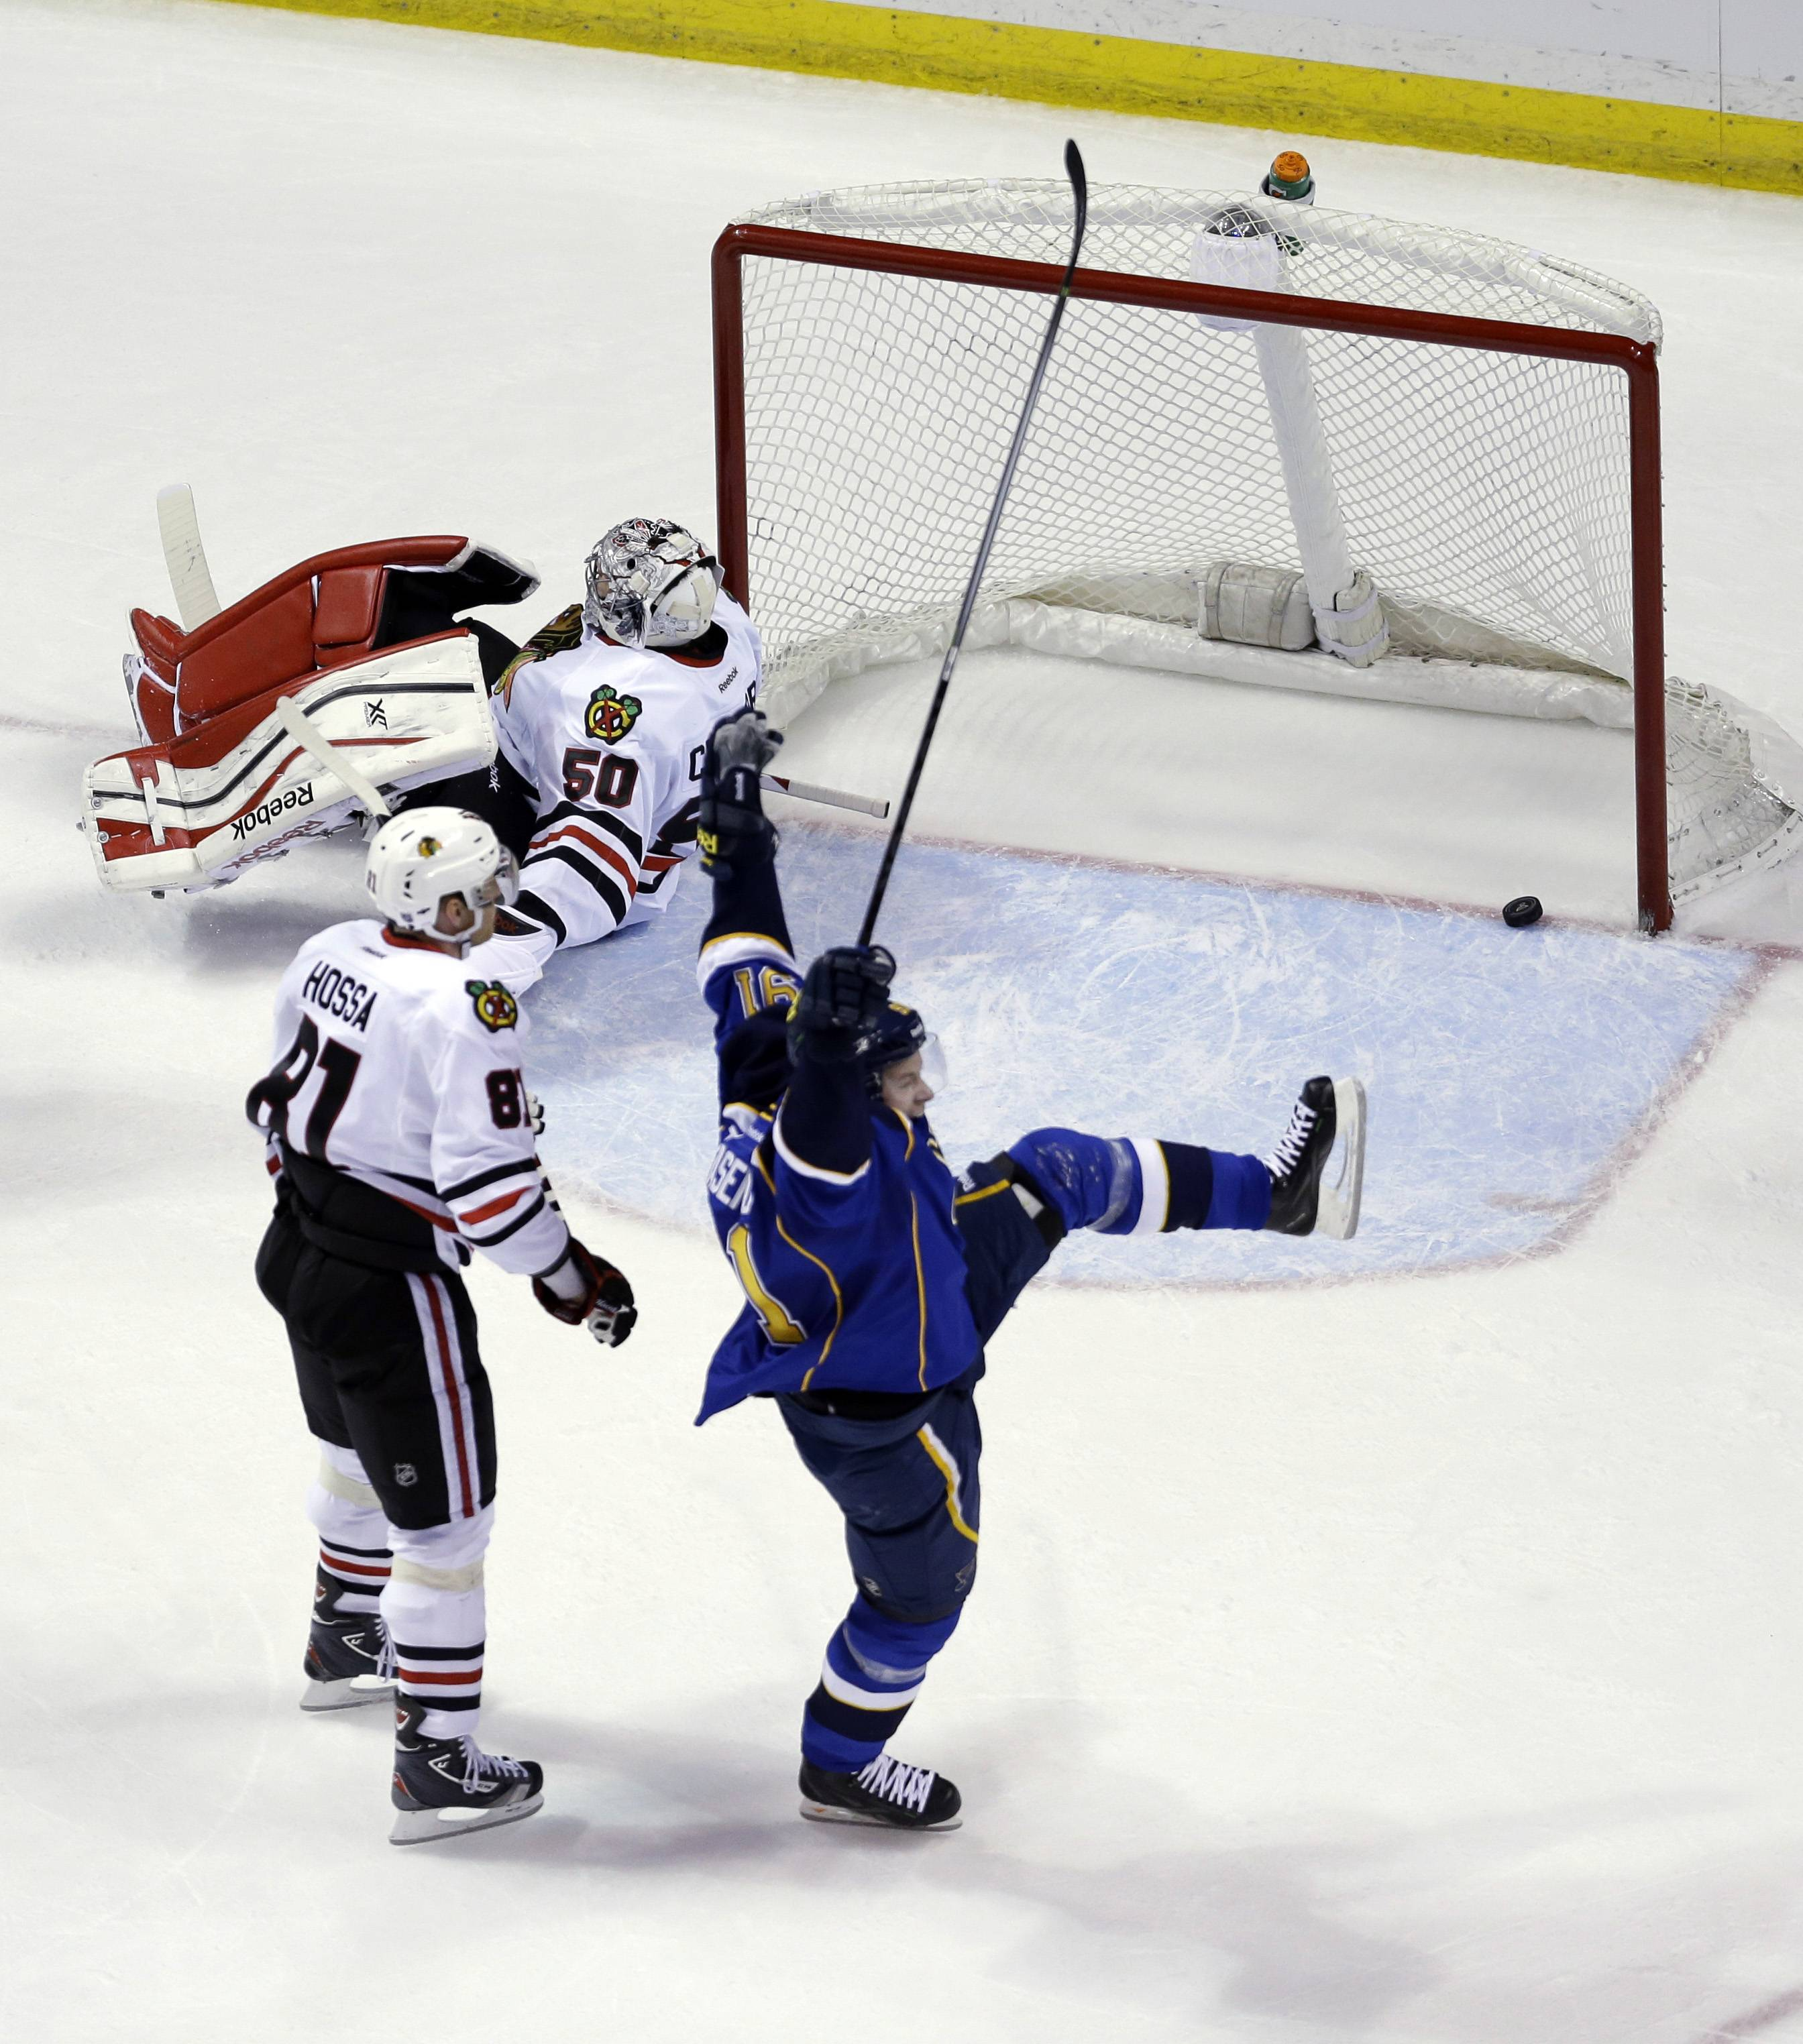 St. Louis Blues' Vladimir Tarasenko, of Russia, celebrates after scoring past Chicago Blackhawks goalie Corey Crawford (50) and Marian Hossa (81) during the first period.